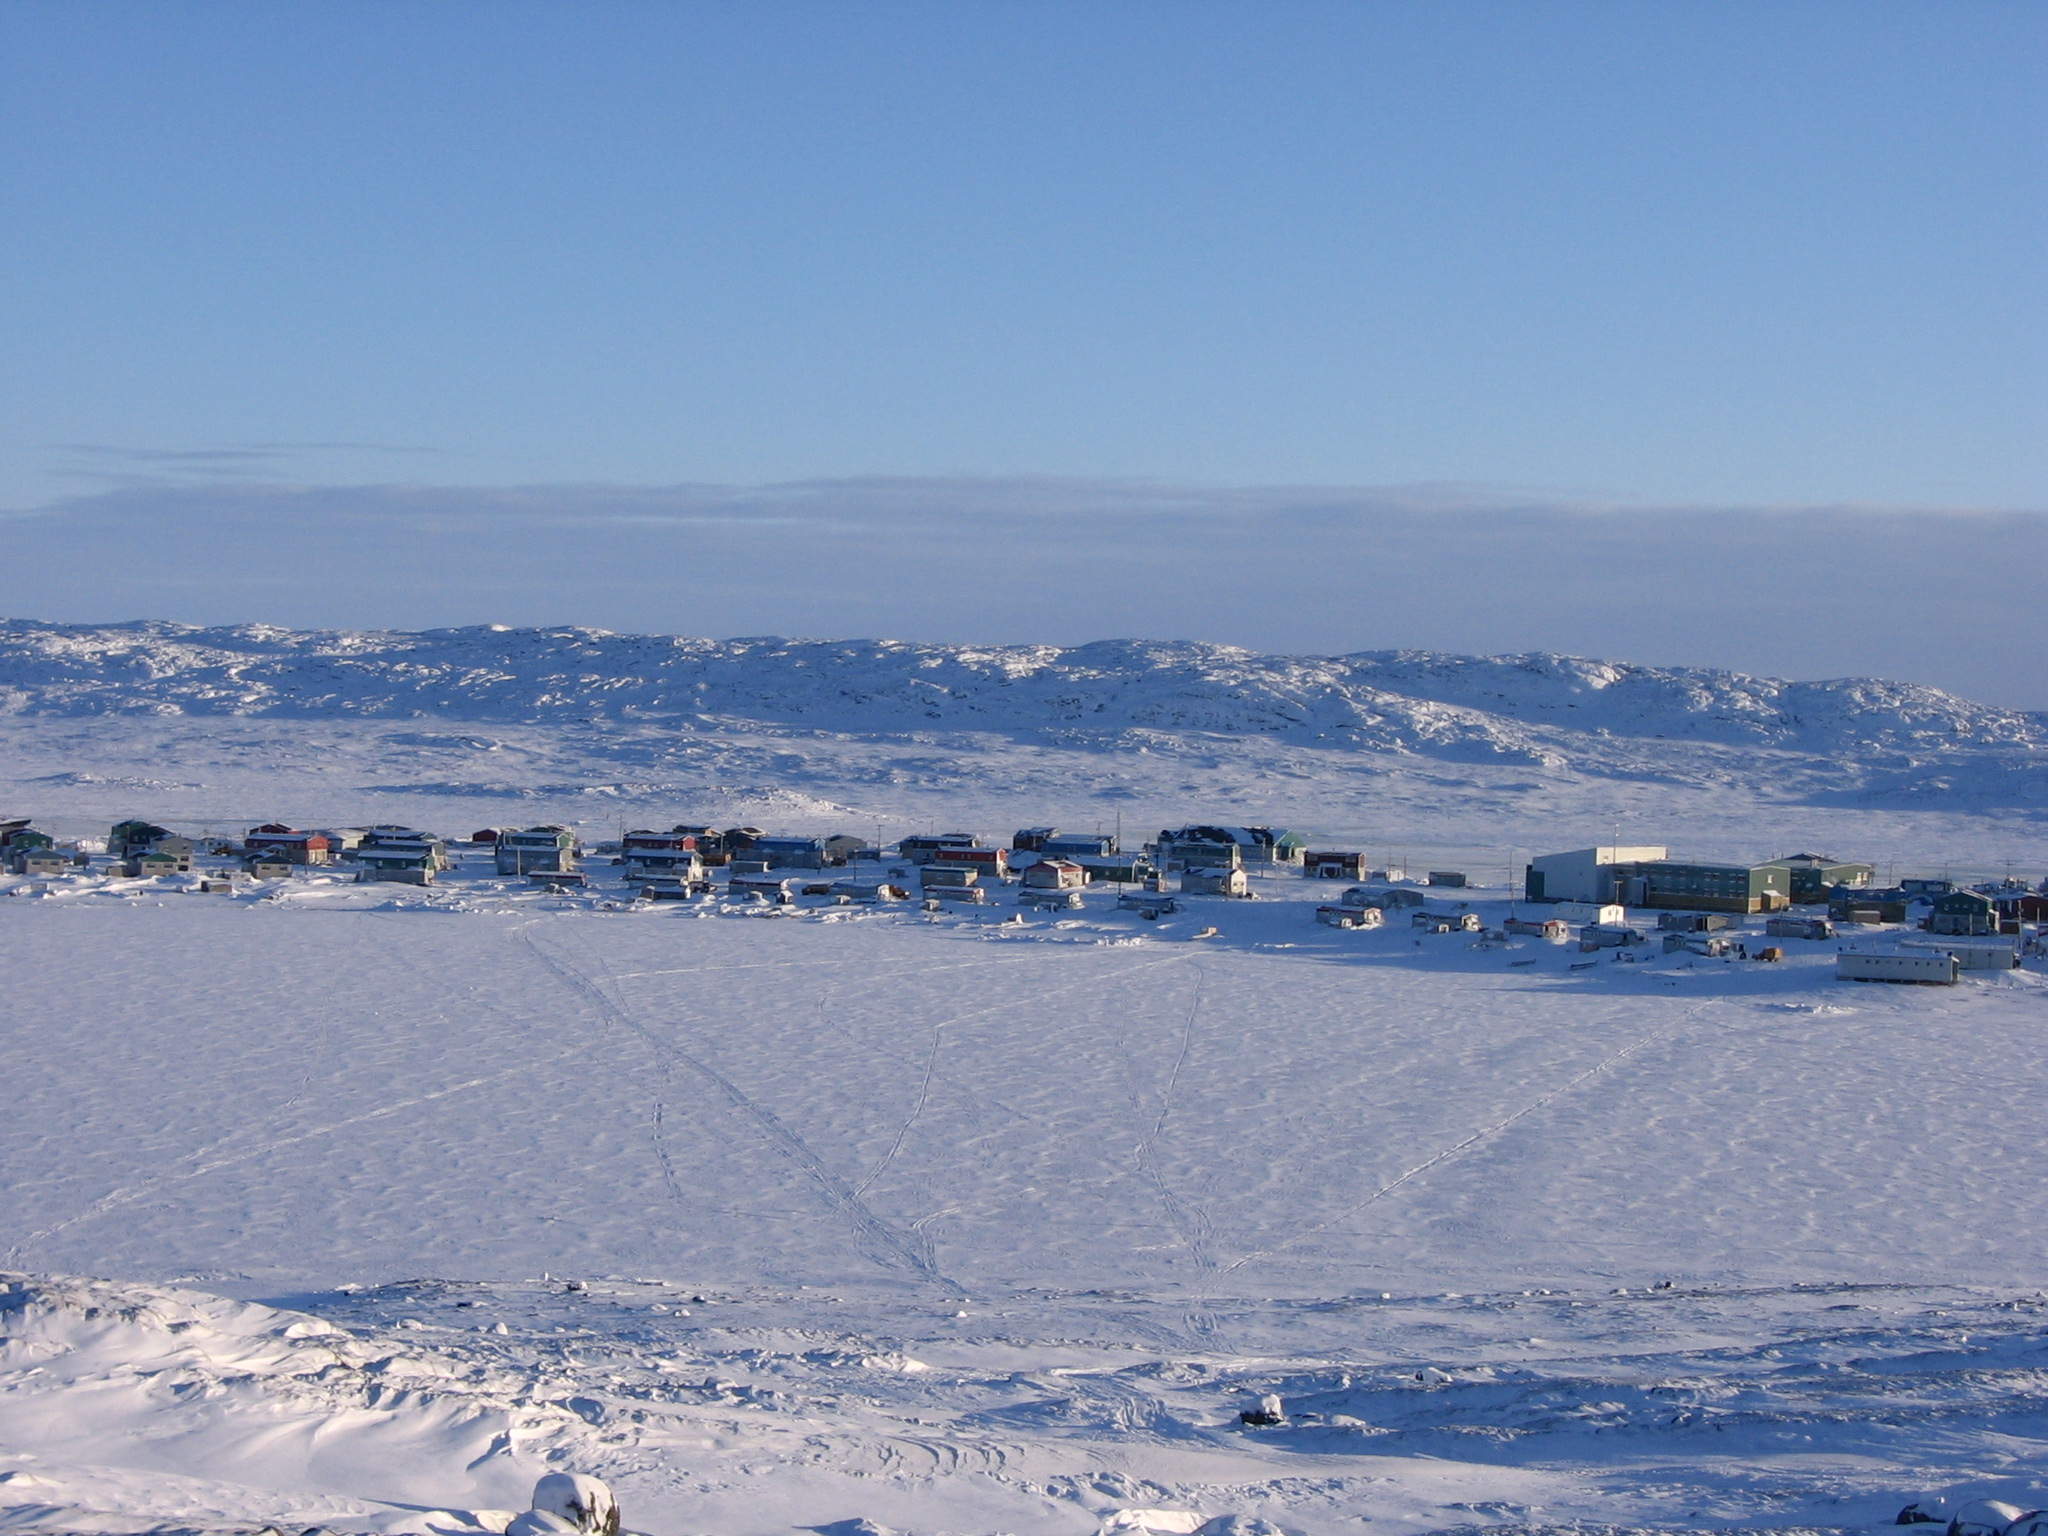 Town on a snowy plain with mountains in the background. Kangiqsualujjuaq, Nunavik. Photo credits to: Richard Wetzel.